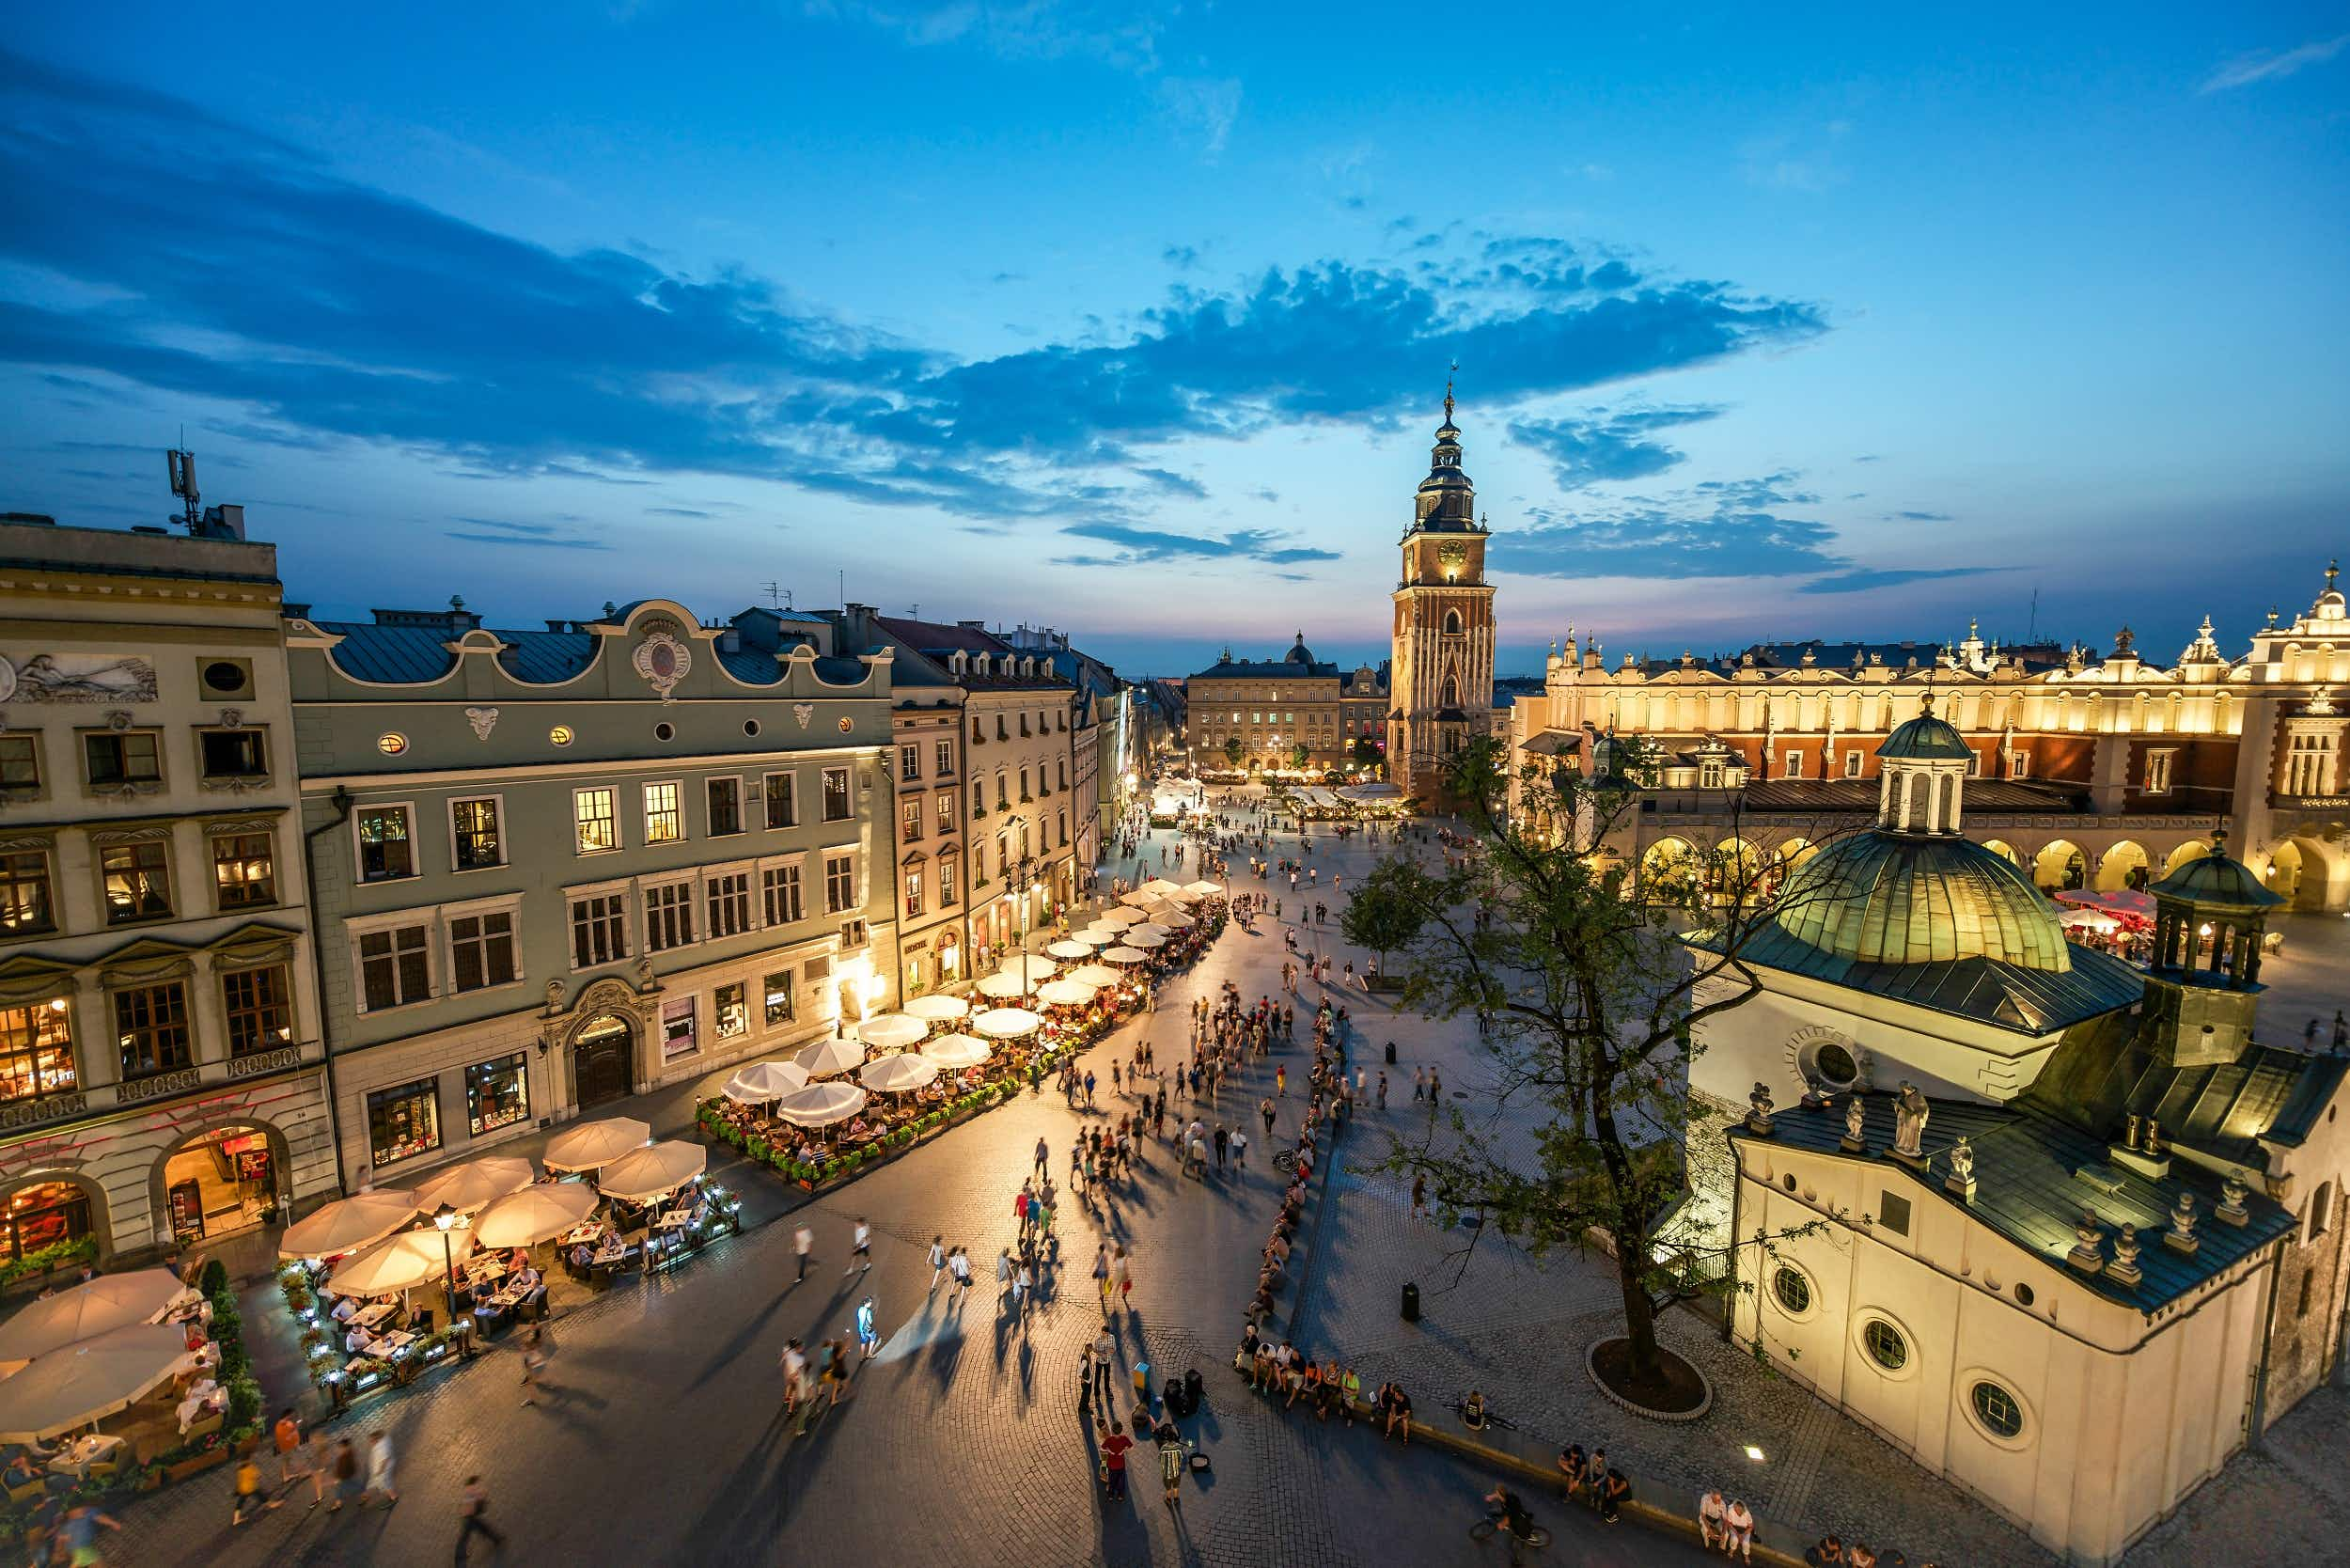 People strolling through Kraków's Main Market Square in the evening © Capture / Getty Images